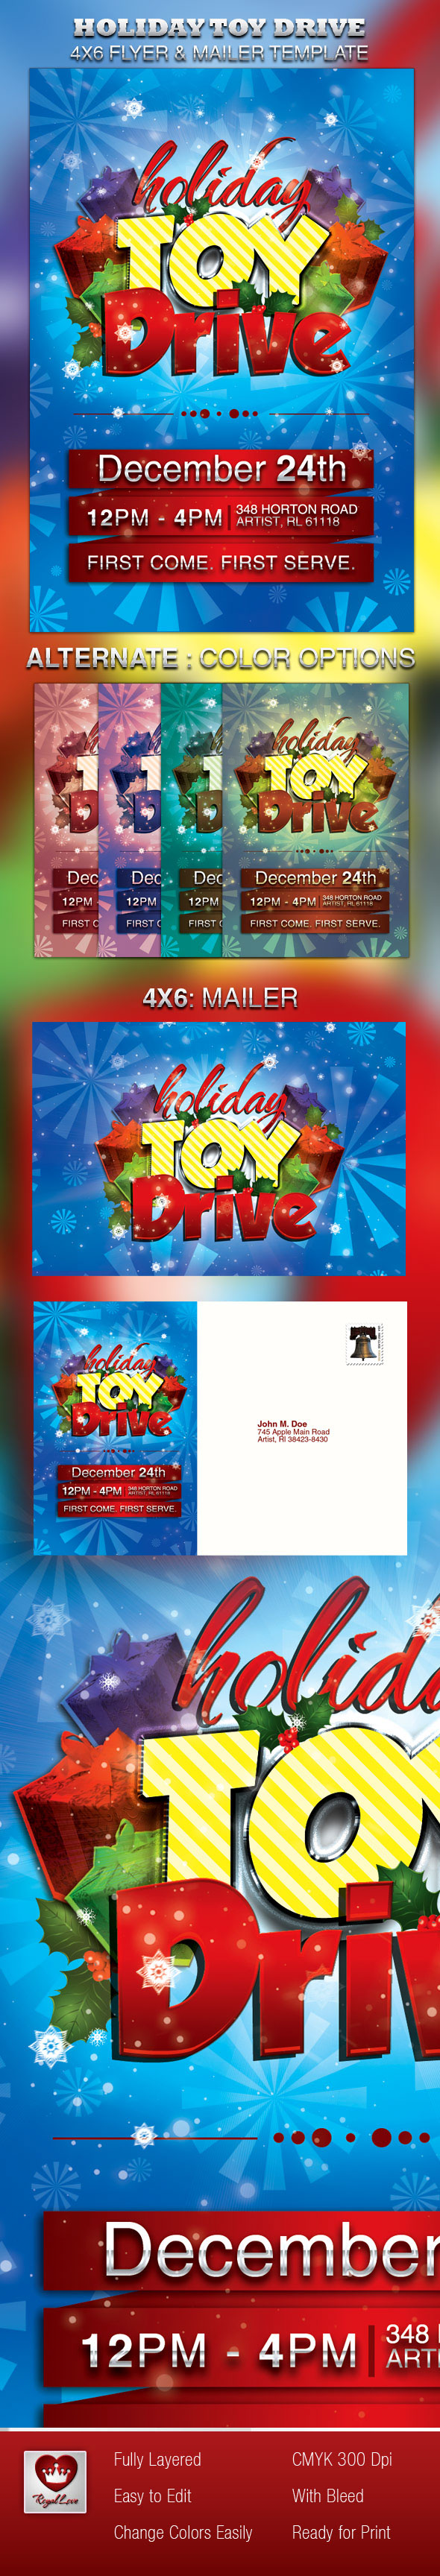 Holiday Toy Drive Flyer & Mailer on Behance